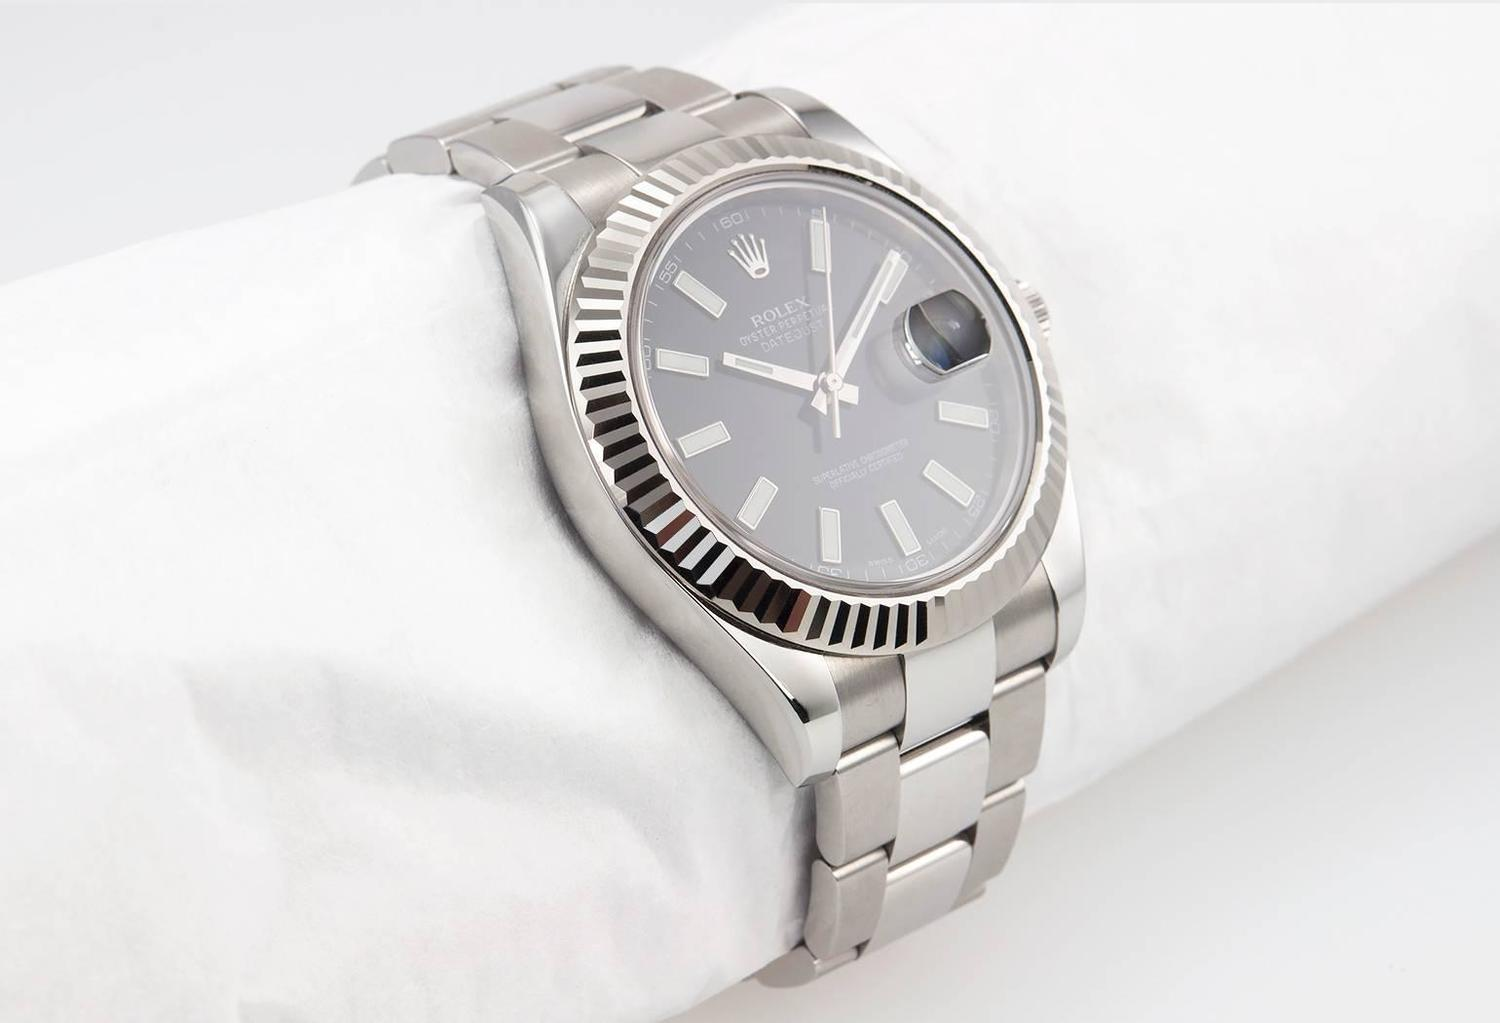 Rolex Stainless Steel Gold Fluted Bezel Datejust Ii